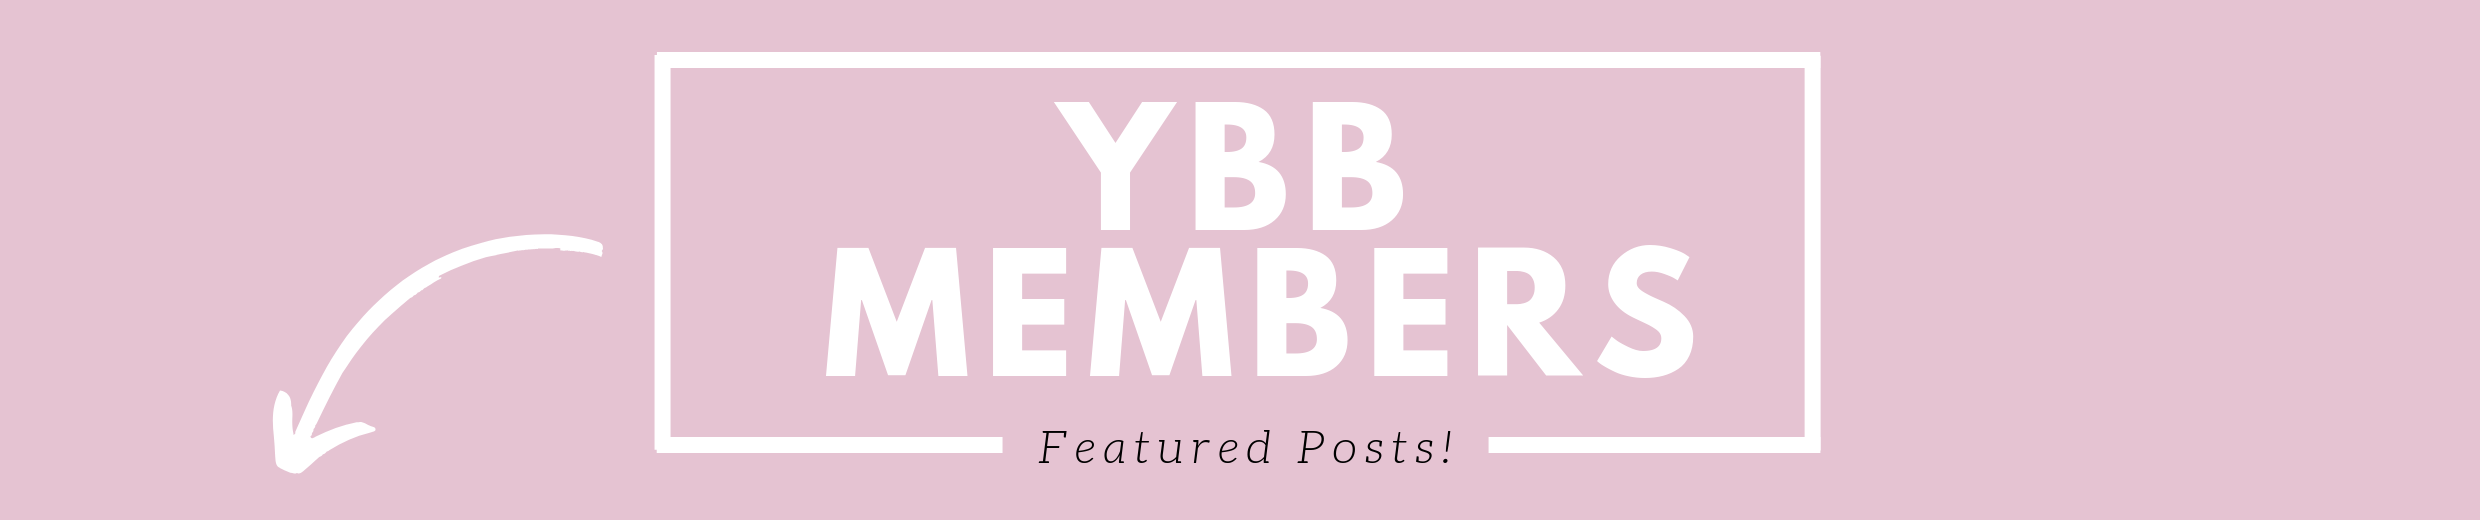 ybb Blog (33).png